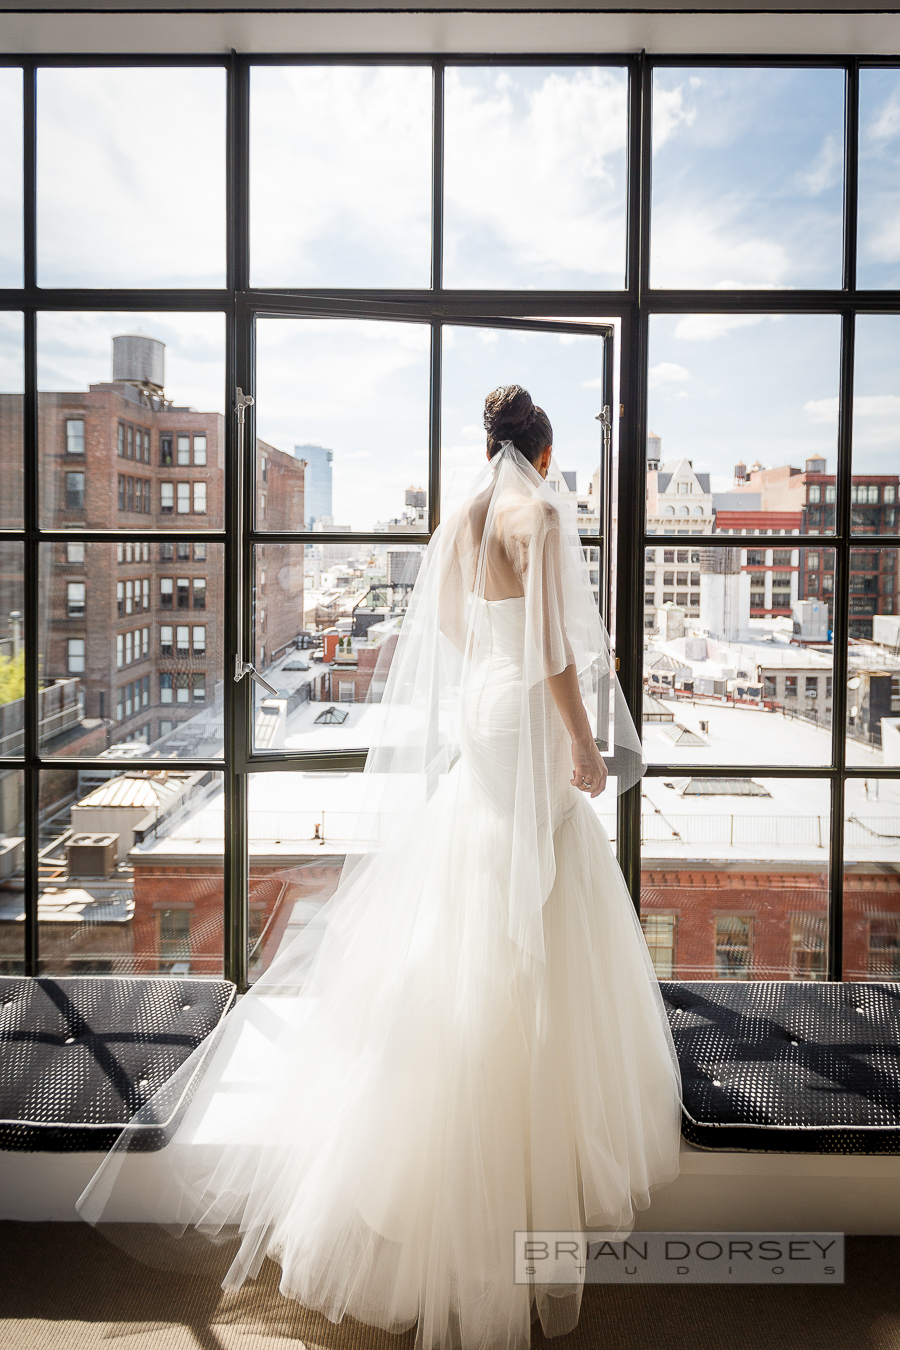 isola nomo soho hotel wedding brian dorsey studios ang weddings and events-10.jpg